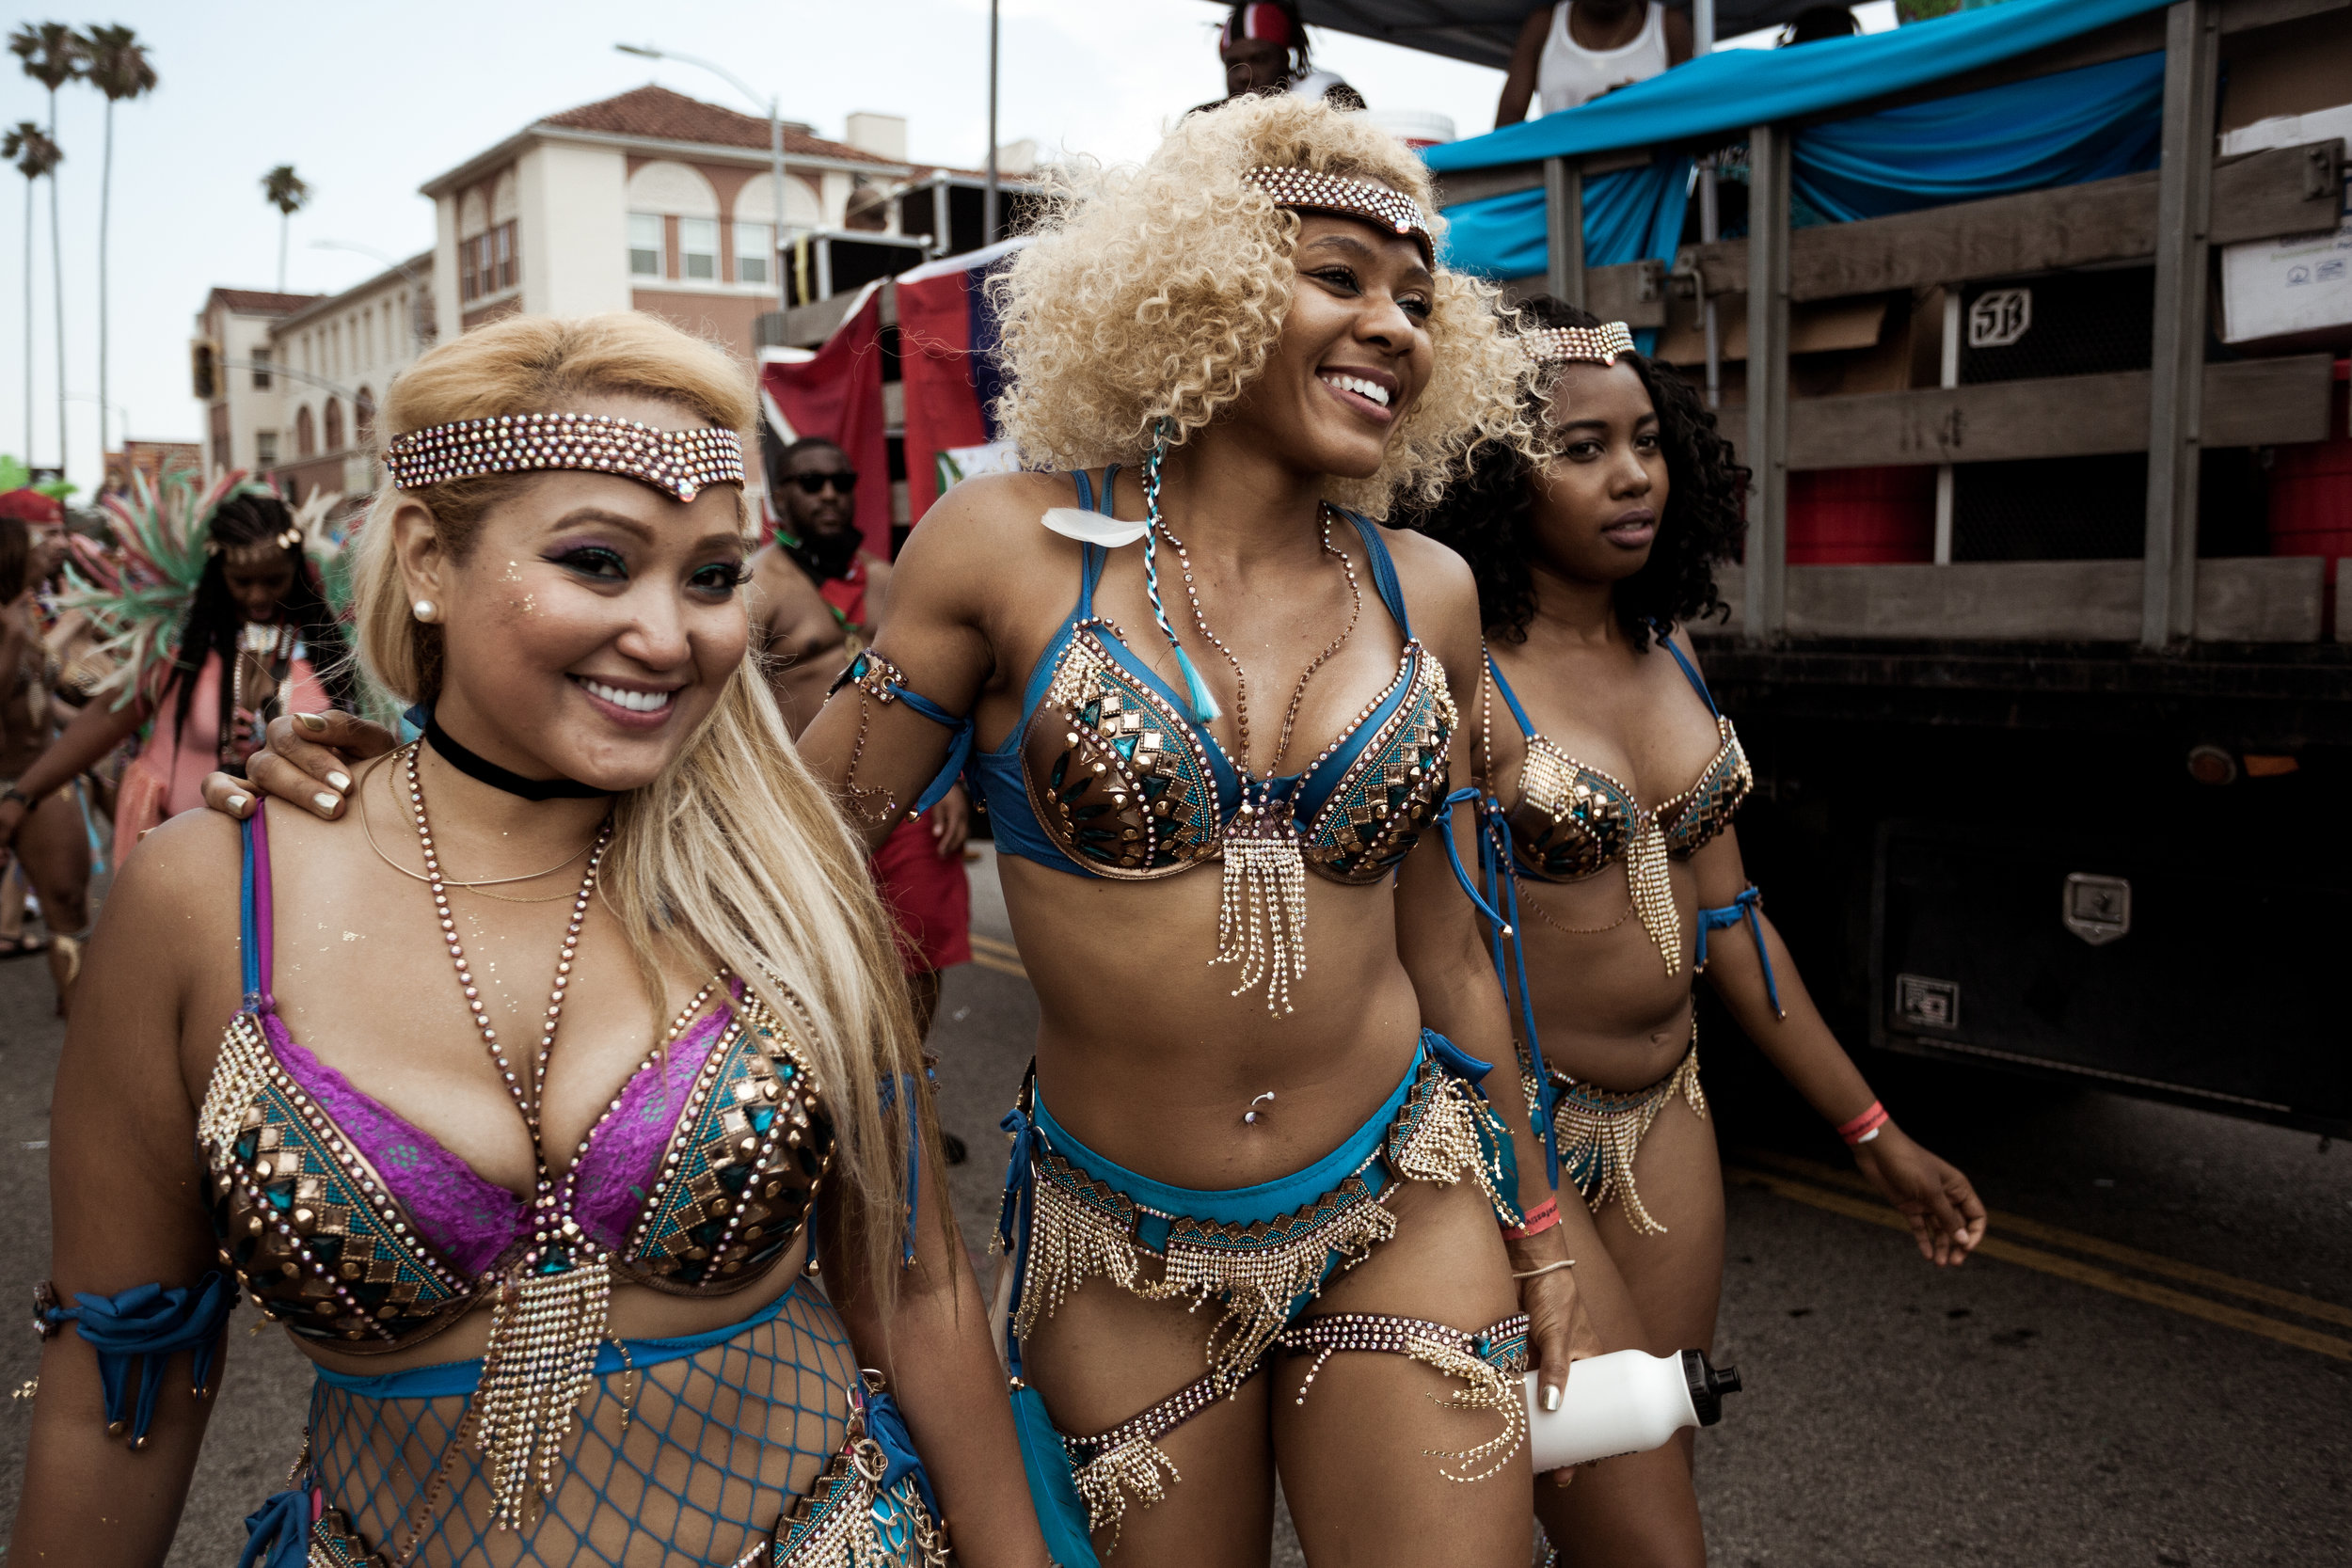 Chacon Images_Carnaval_Print-5718.jpg